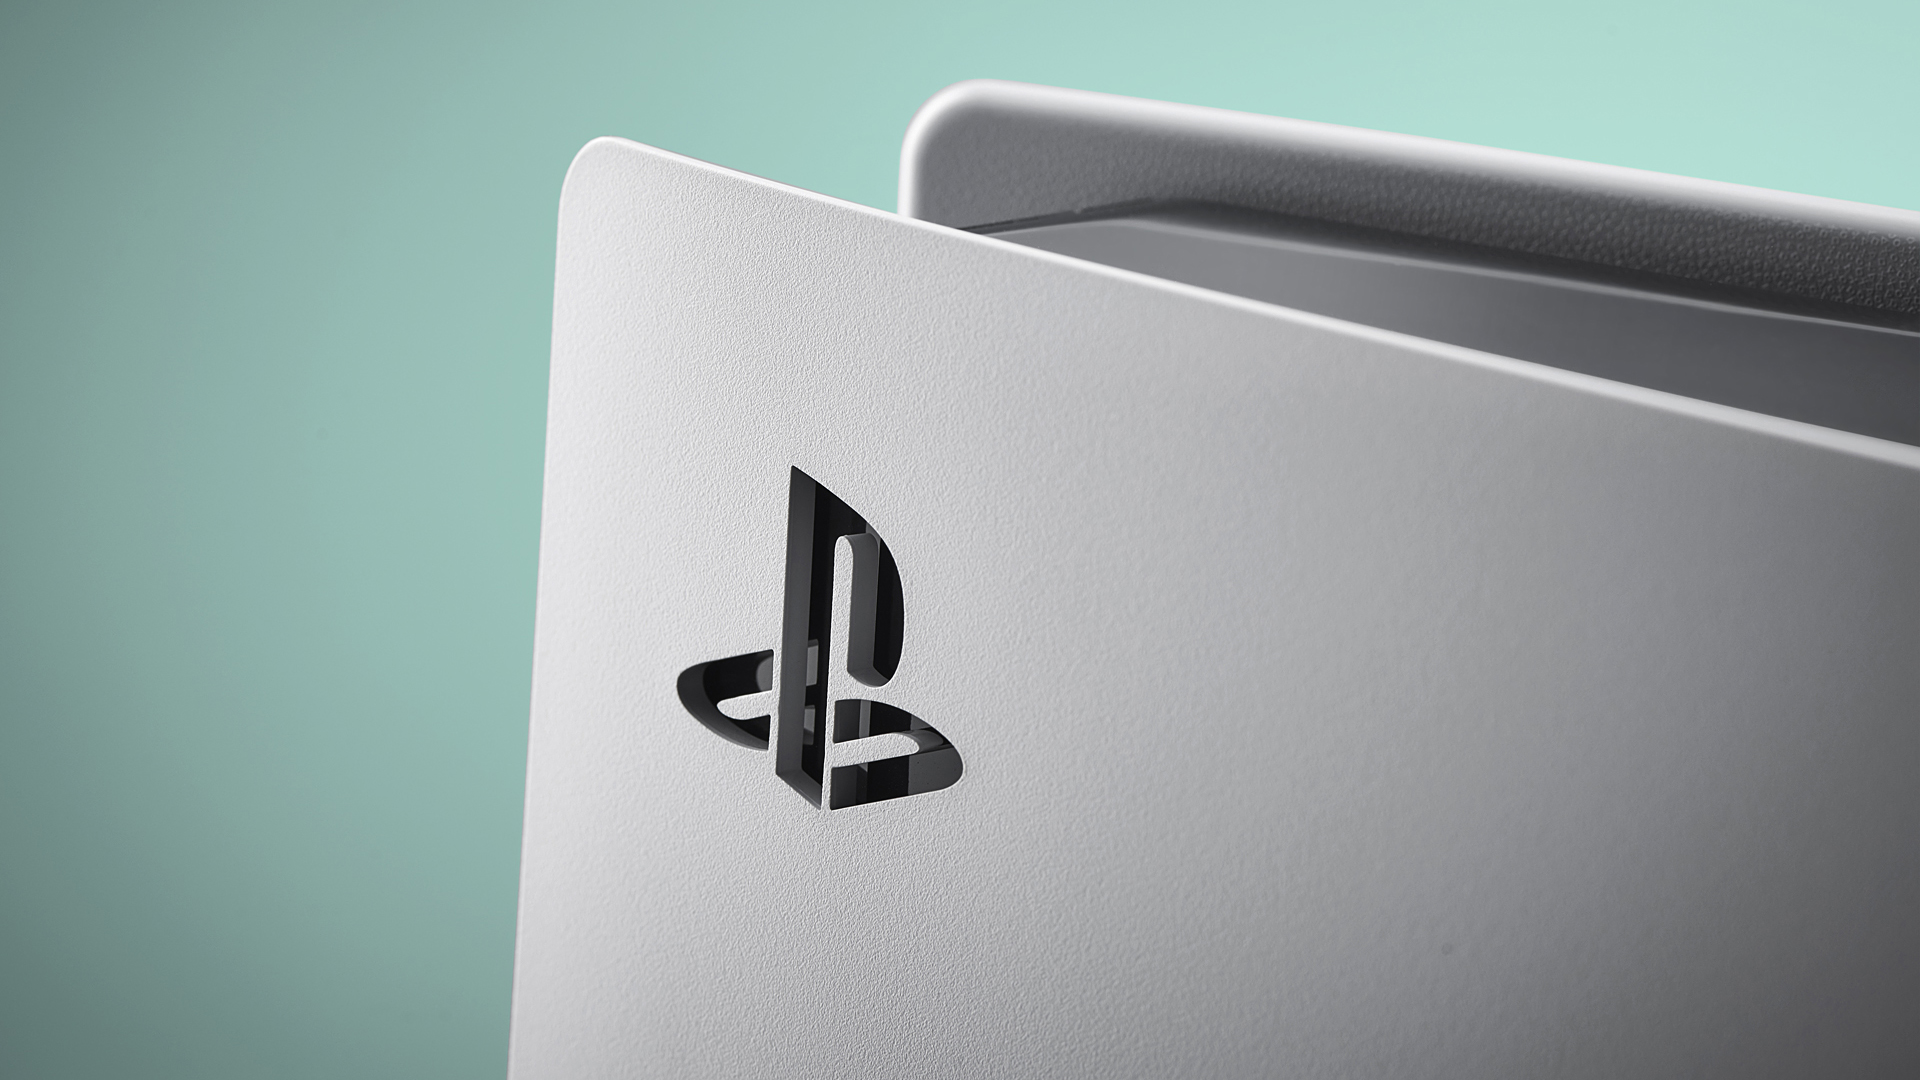 PS5 Pro with TWO graphics cards is the death blow Xbox Series X didn't see  coming   T3